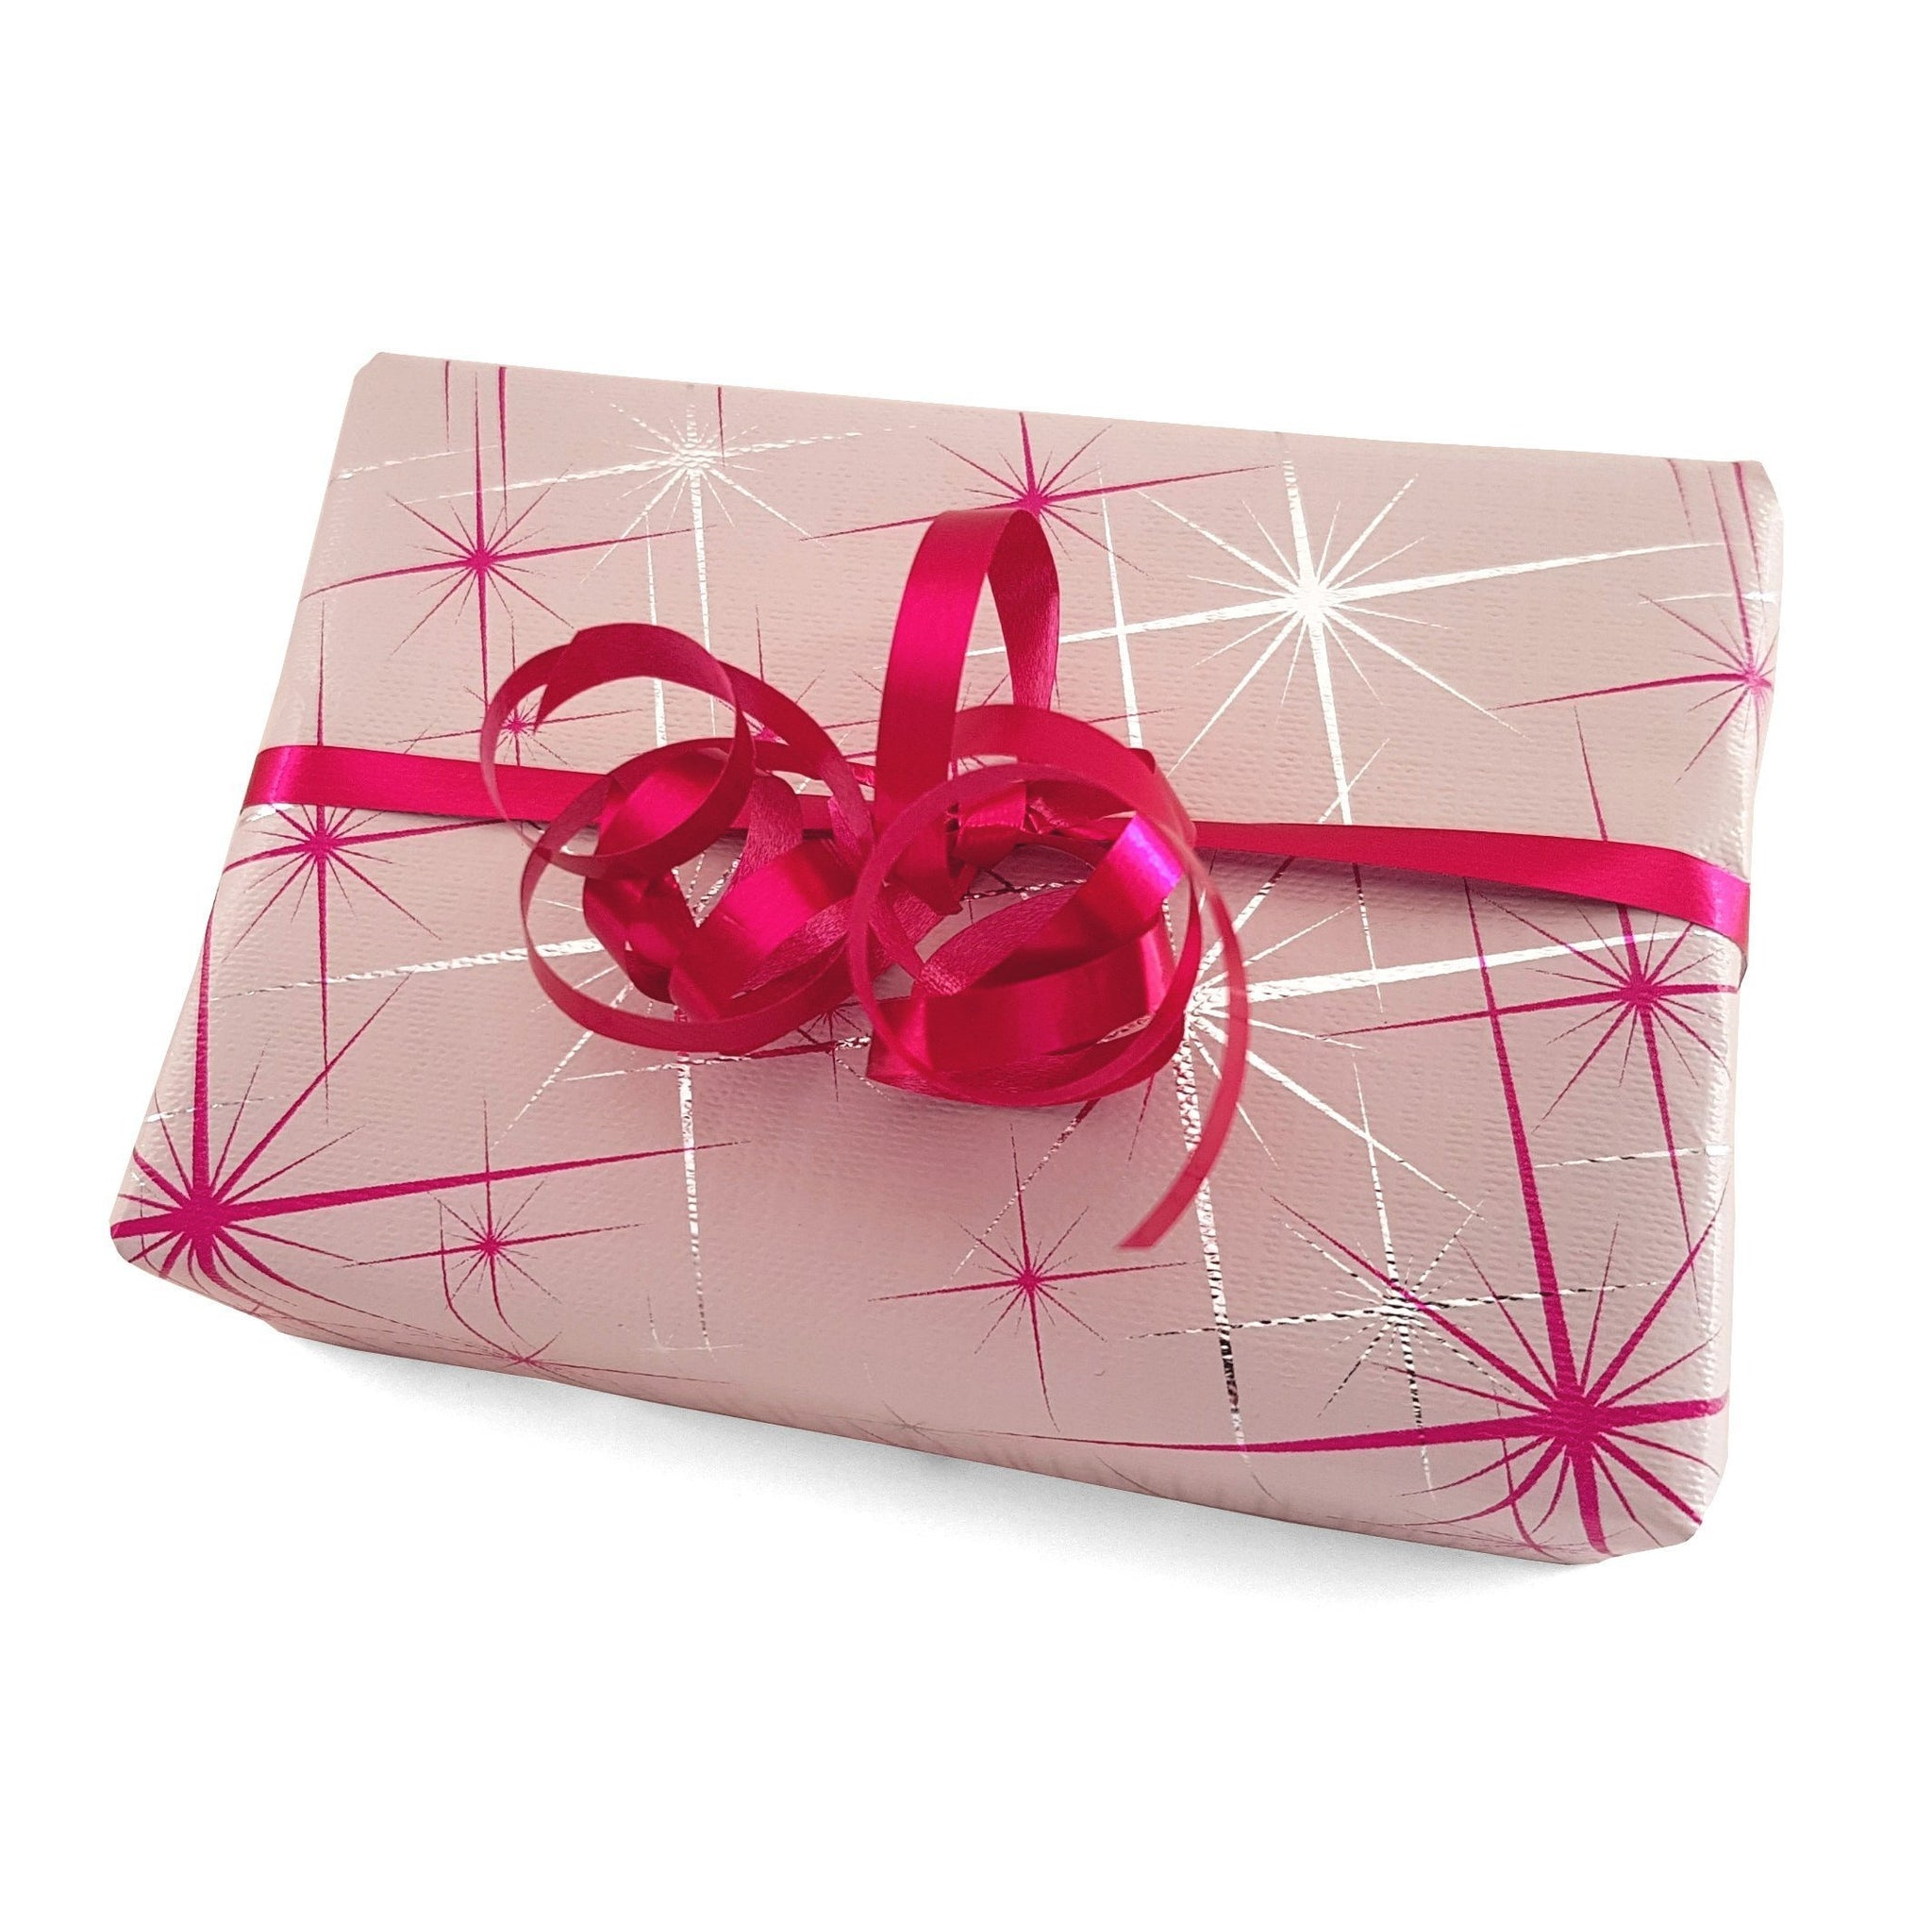 White Xmas Gift Wrap Paper-Hot Pink Design Wrapping Paper